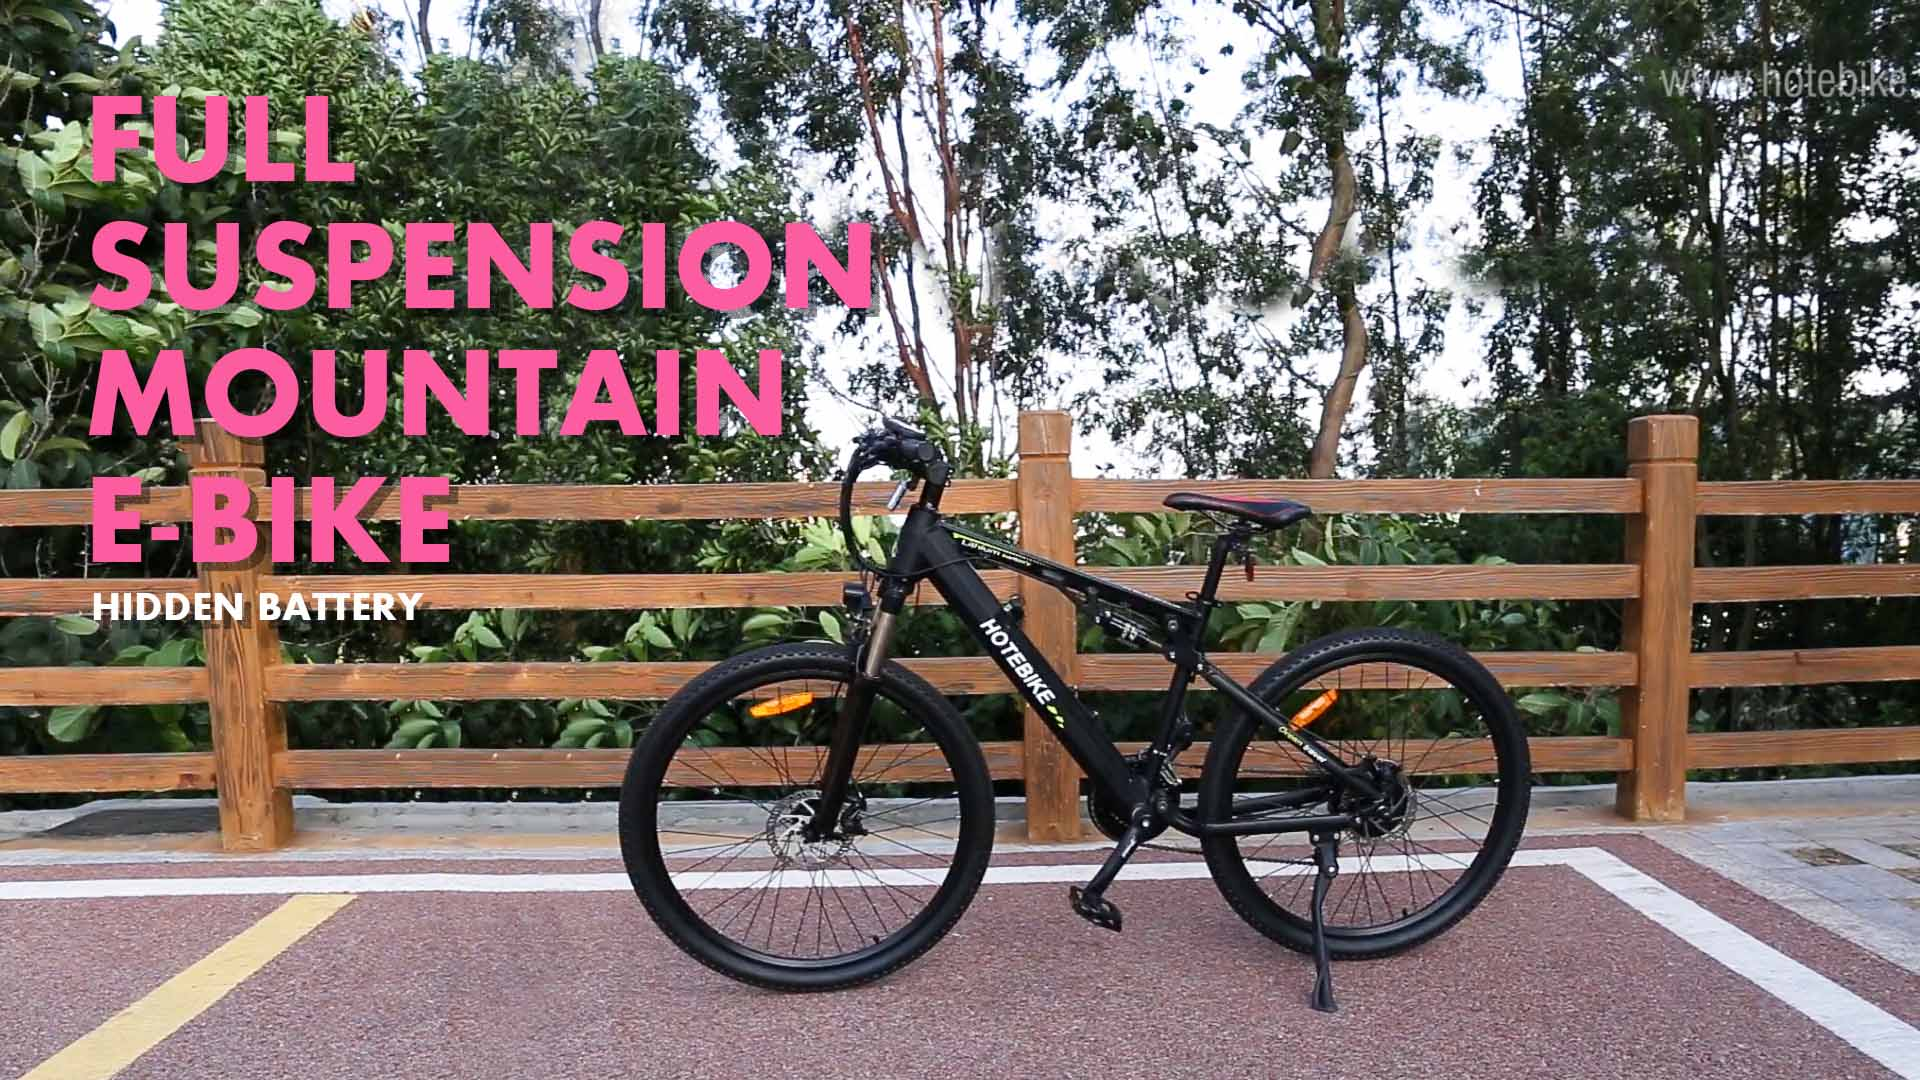 Full Suspension Electric Moutain Bike HOTEBIKE Elctric Bicycle